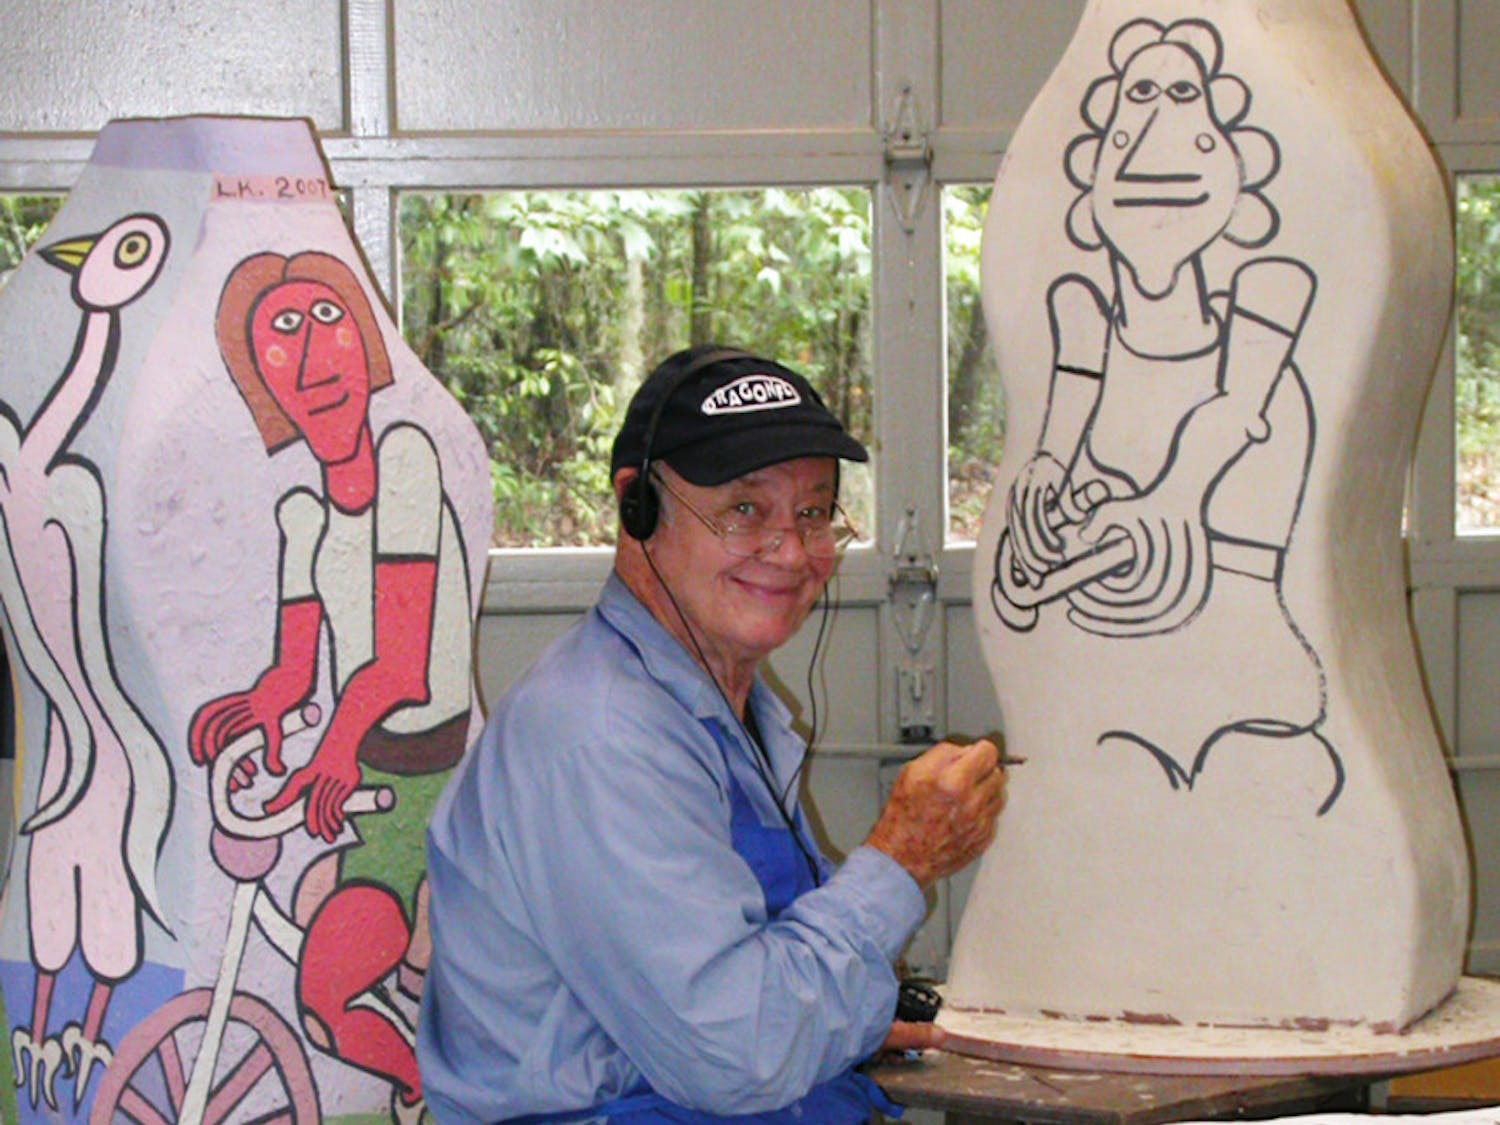 Gainesville artist Lennie Kesl's friends described him as energetic, friendly and passionate about art.